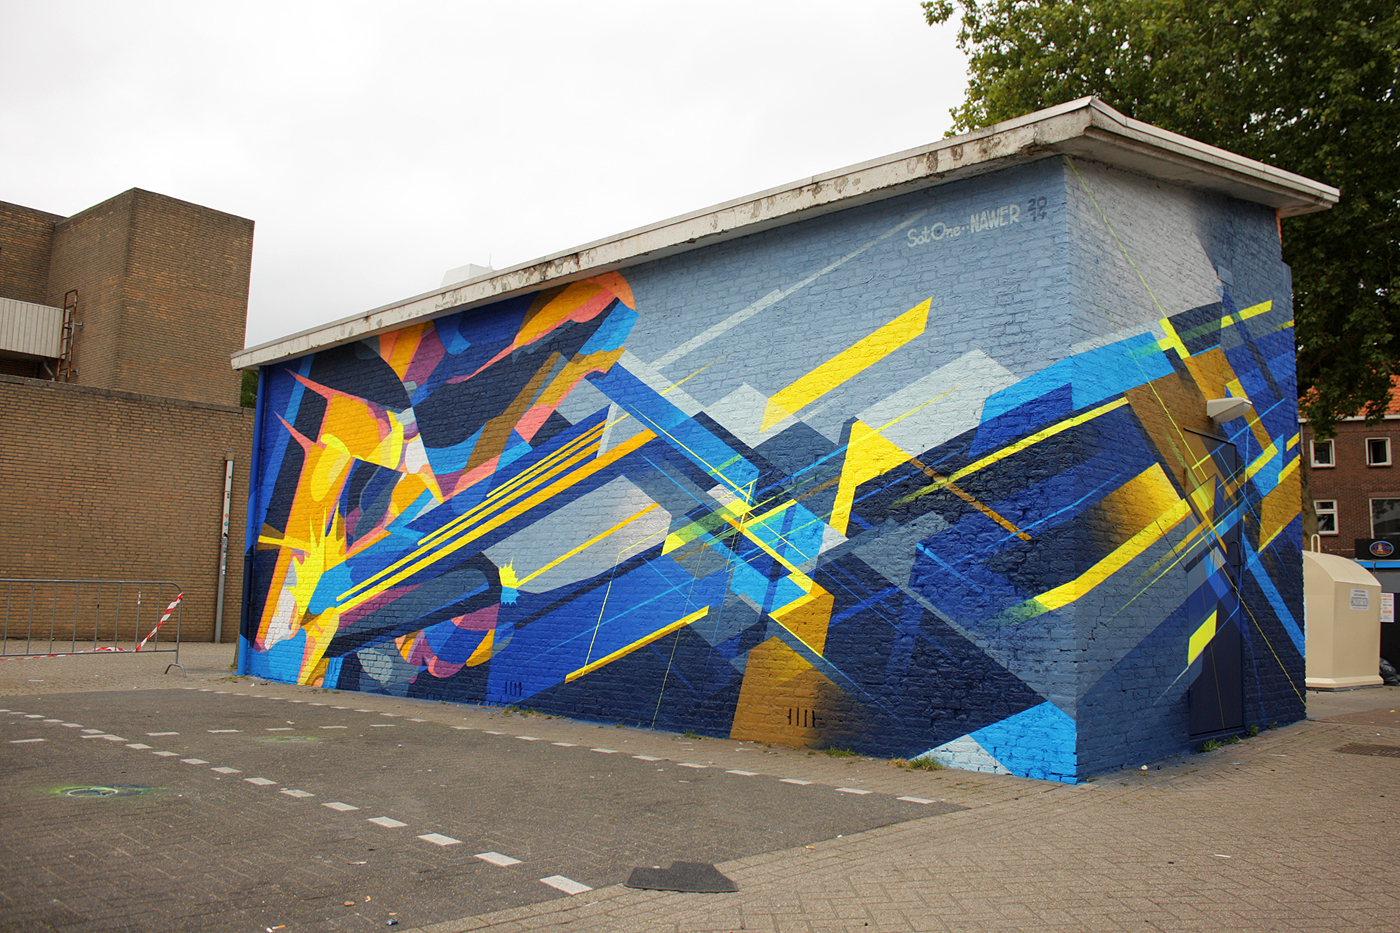 satone-nawer-new-mural-in-eindhoven-04